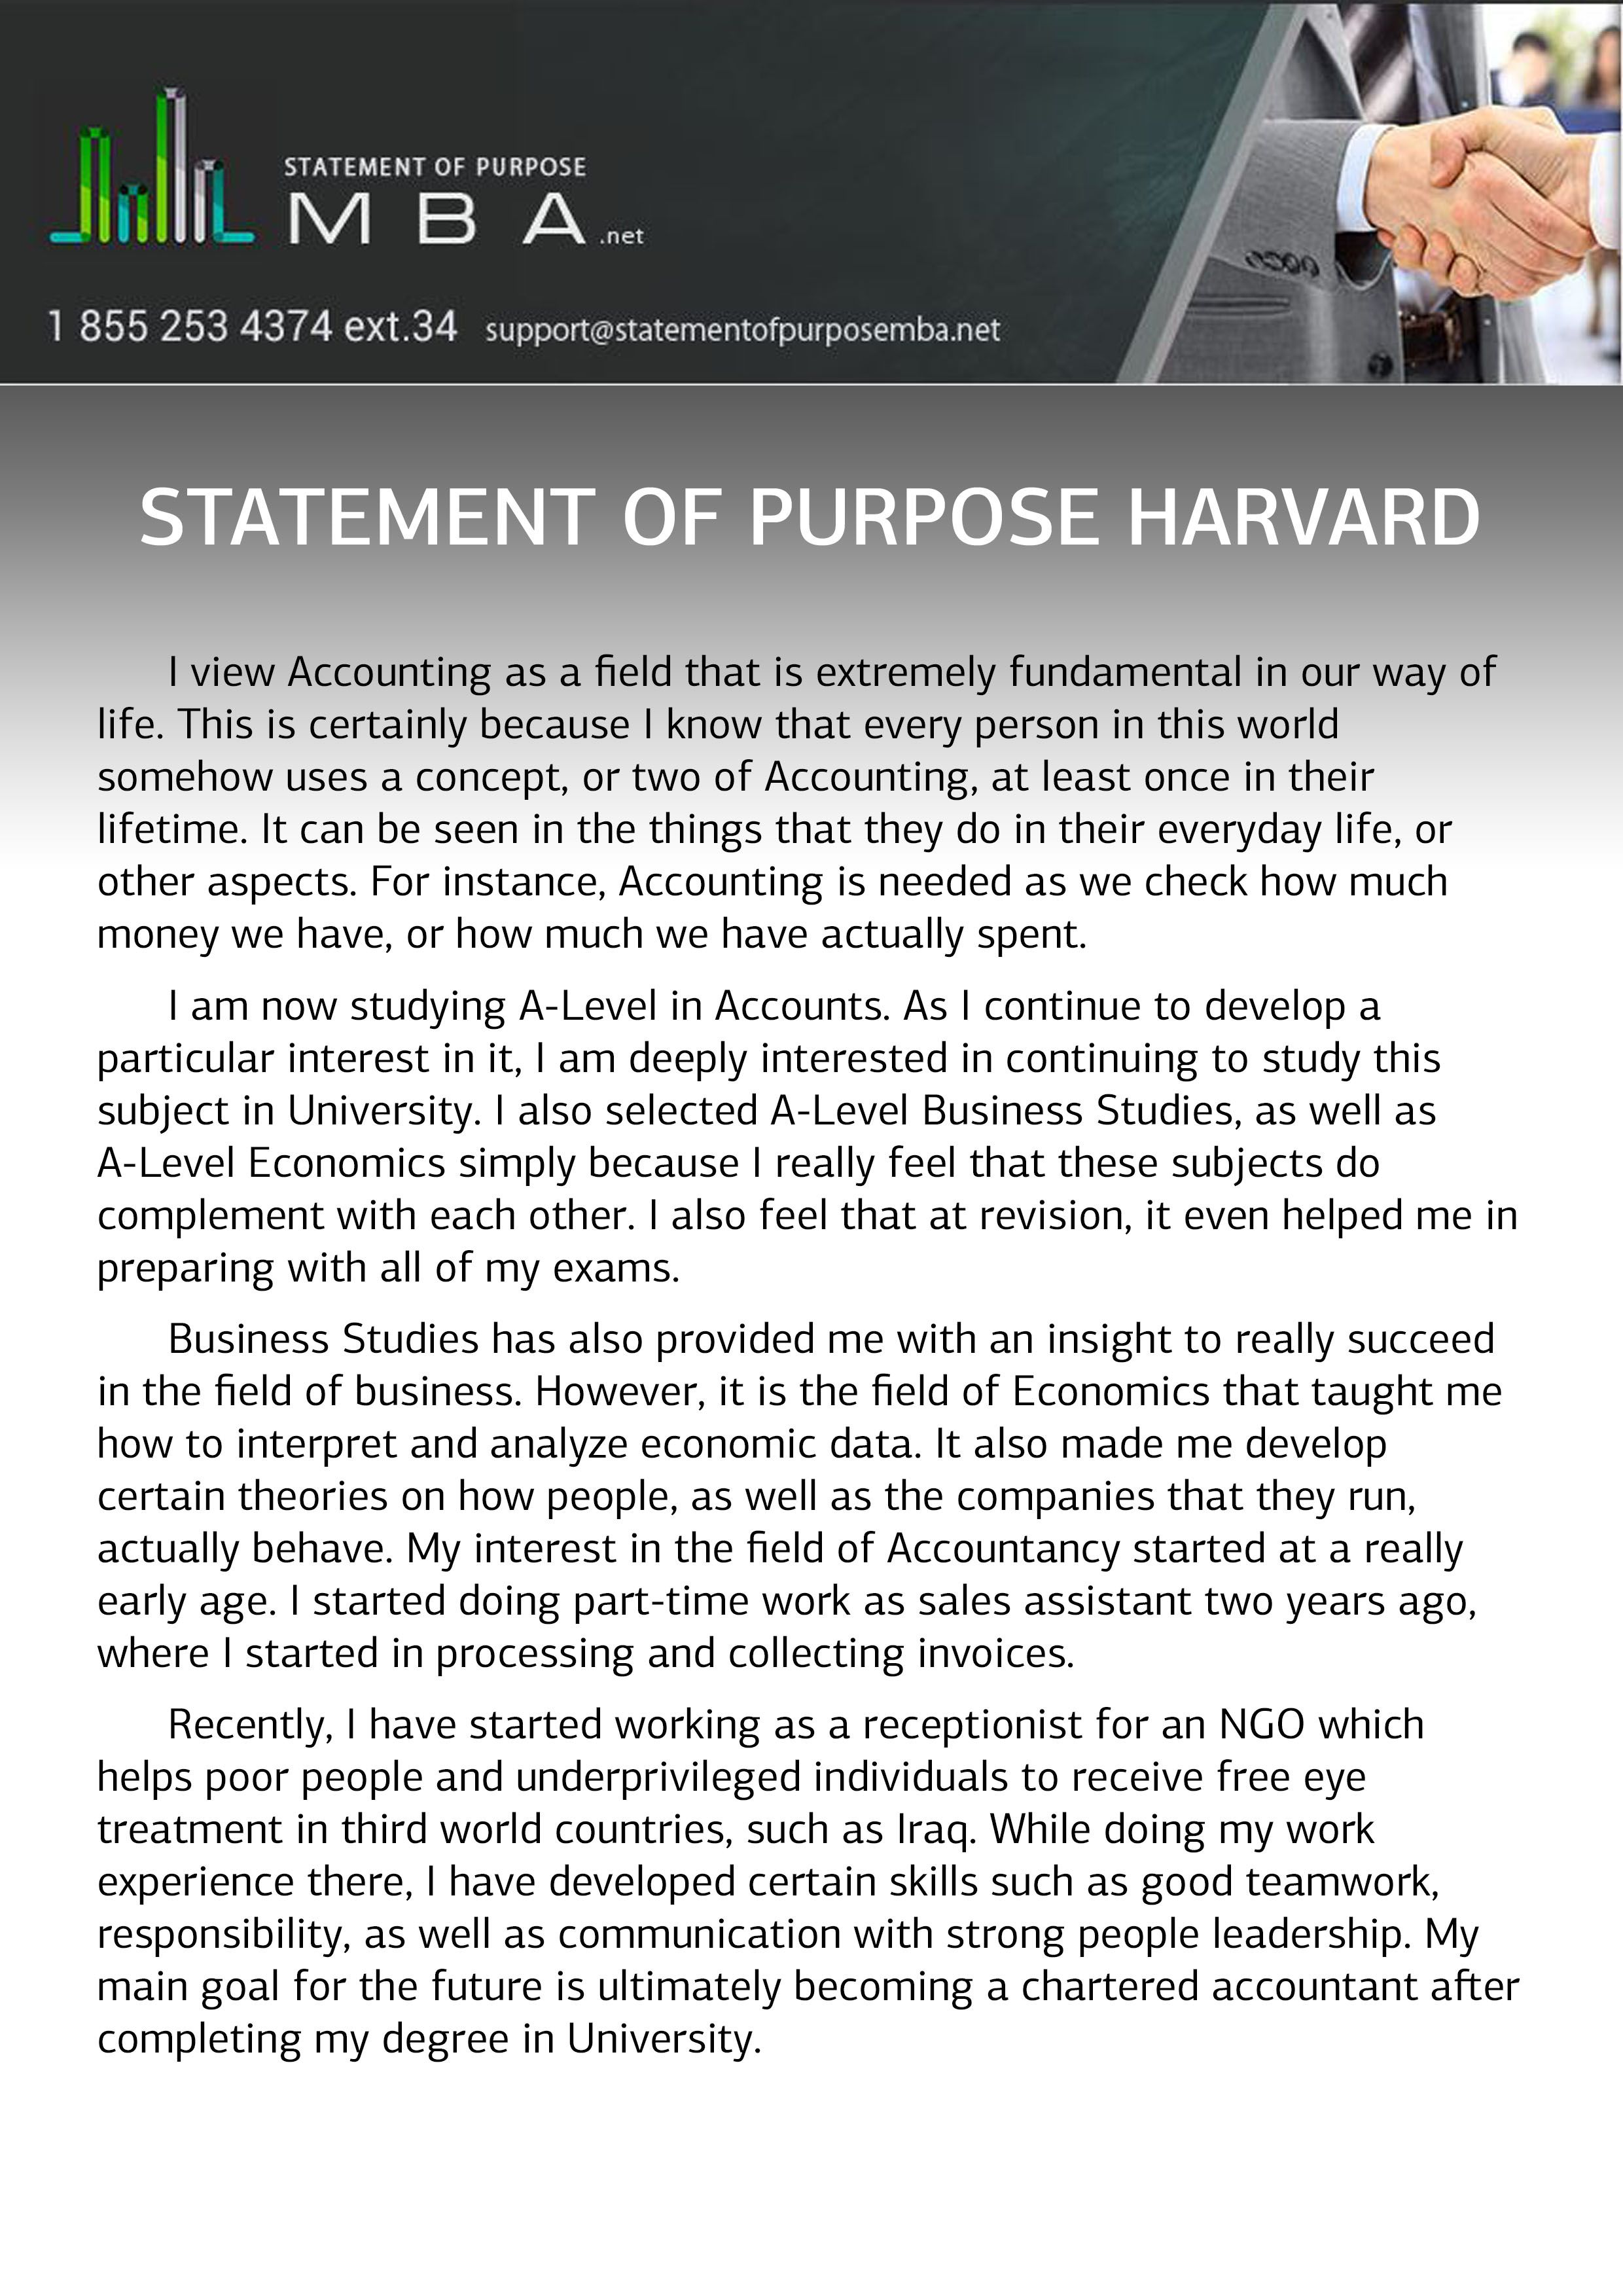 007 Harvard Essay Surprising Essays That Worked Application Prompt 2018 Prompts Full